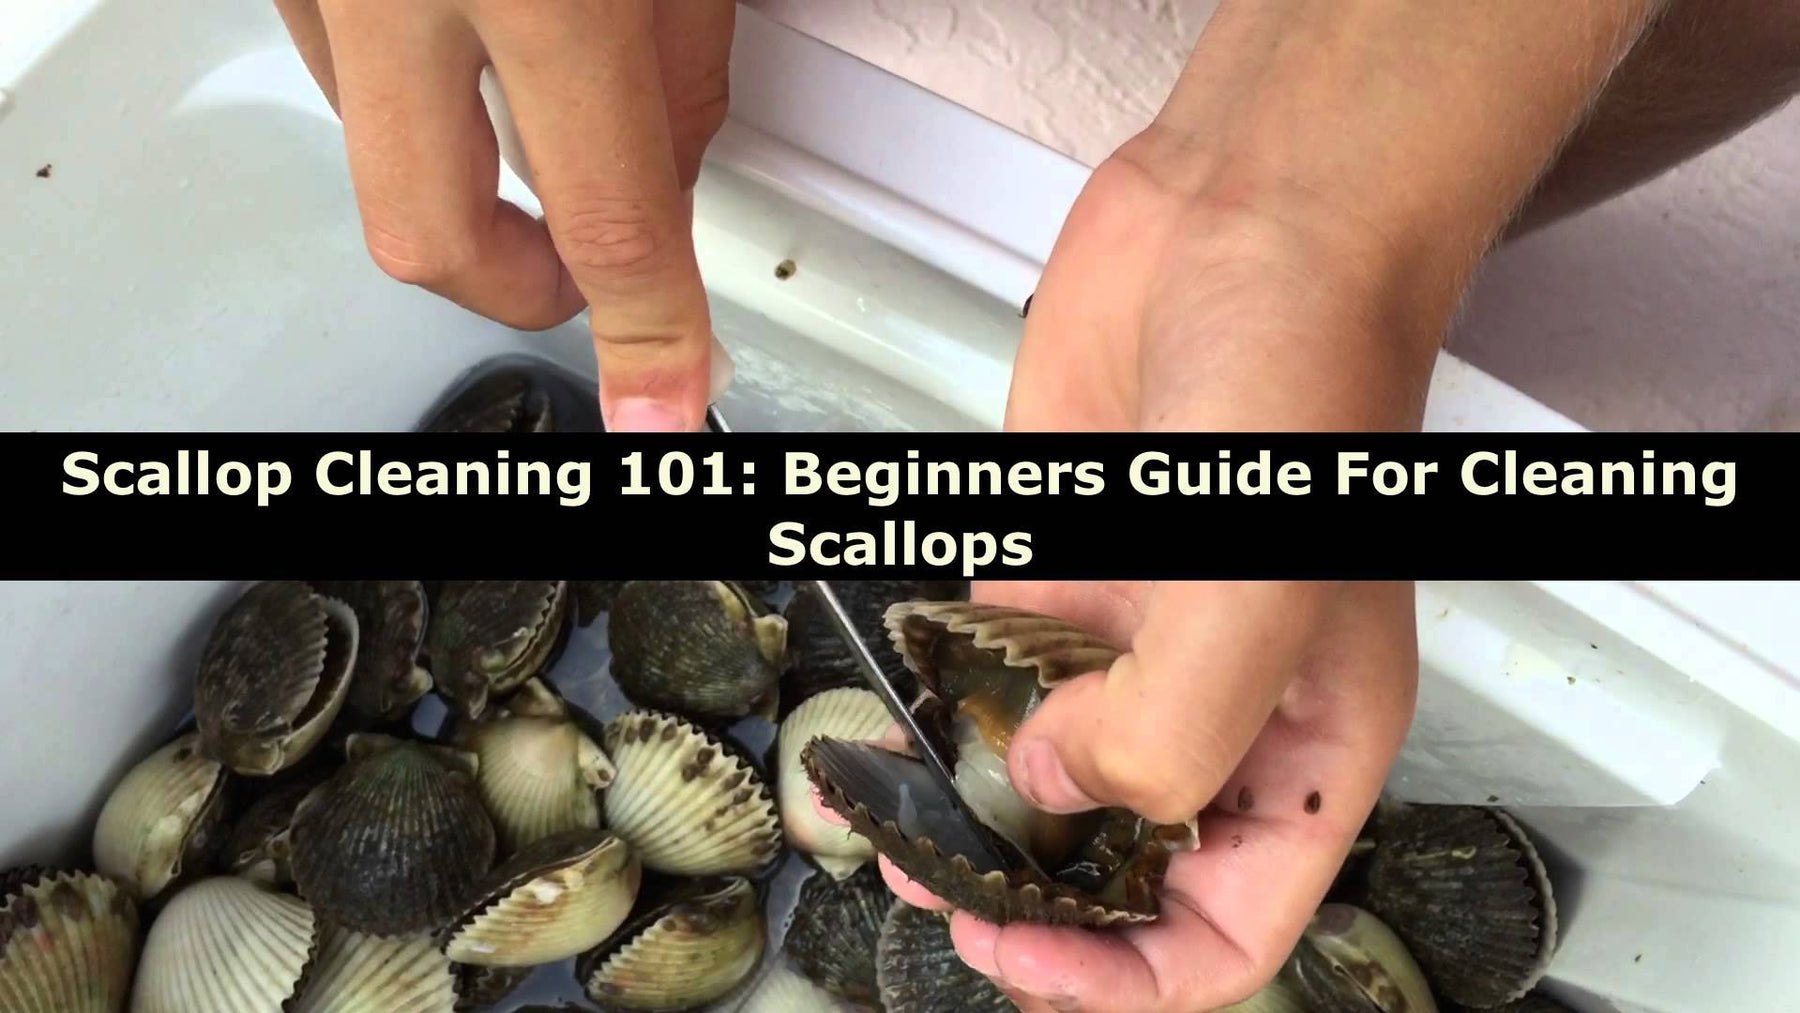 Scallop Cleaning 101